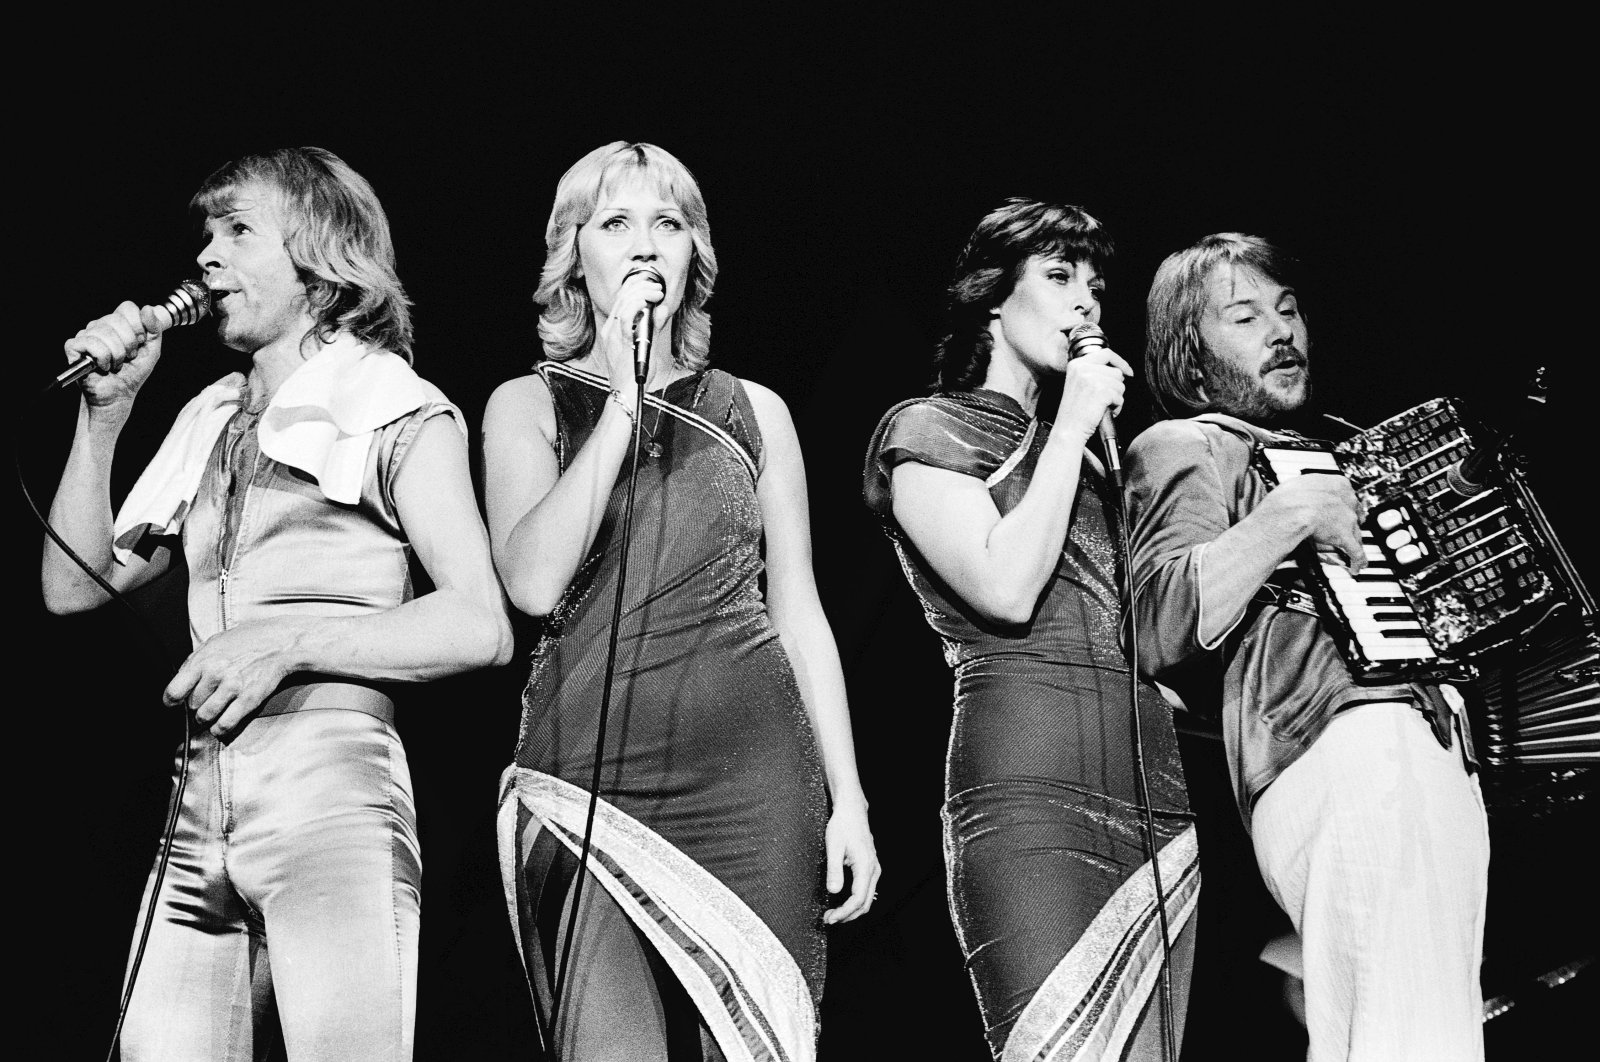 Björn Ulvaeus (L), Agnetha Faltskog (C-L), Anni-Frid Lyngstad (C-R) and Benny Andersson, members of the band ABBA,perform on stage at Wembley Arena, in London, U.K.,Nov.9,1979. (Getty Images)